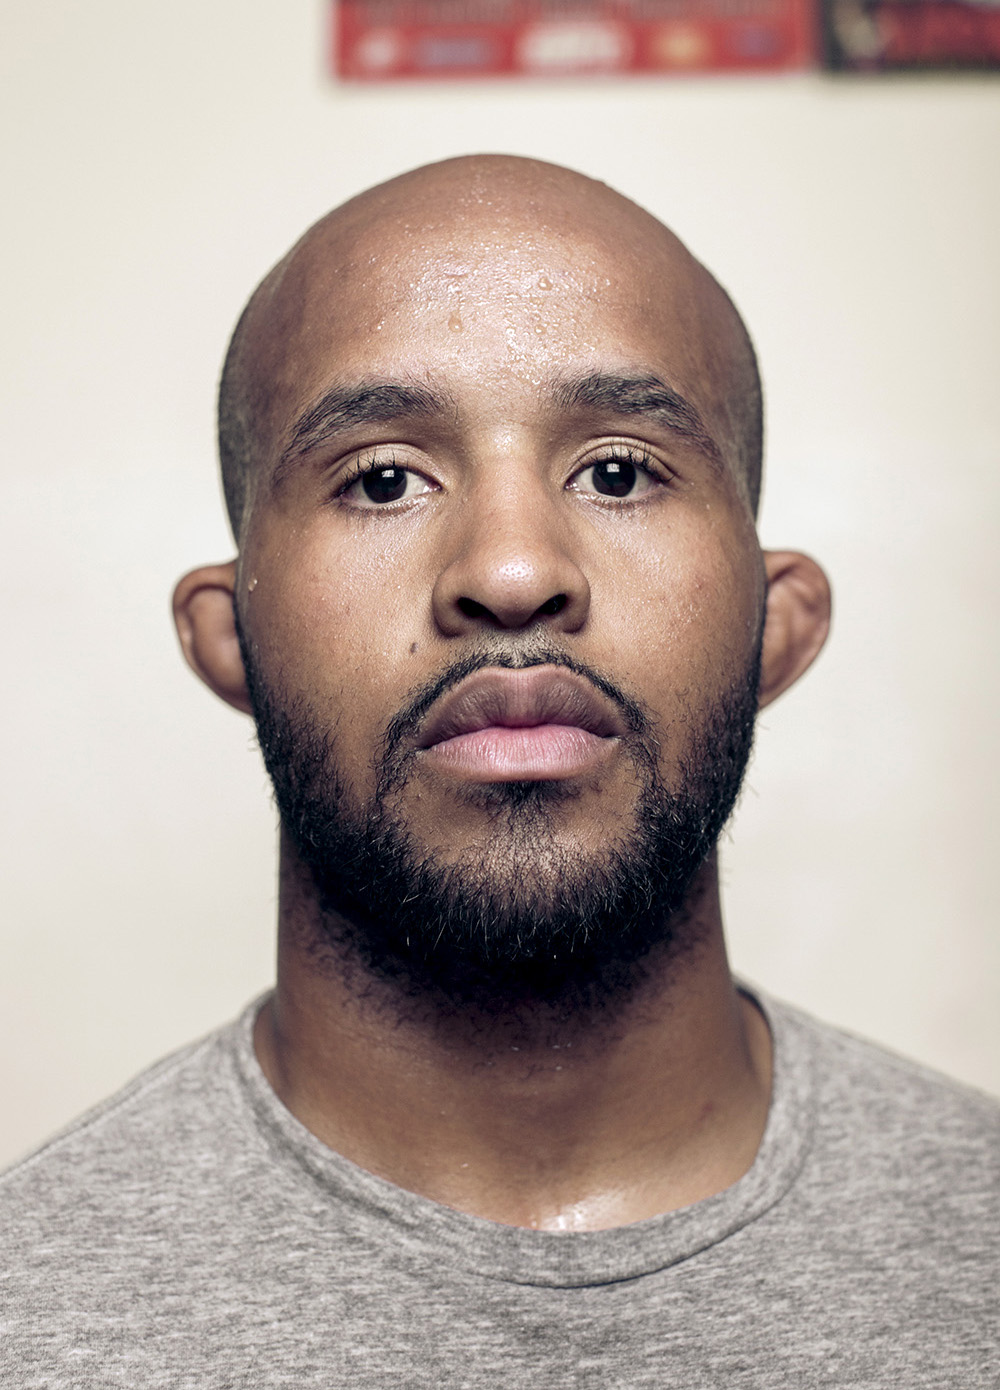 Mike Kane | UCF flyweight champ Demetrious Johnson, AKA Mighty Mouse | Seattle documentary, editorial, and commercial photography